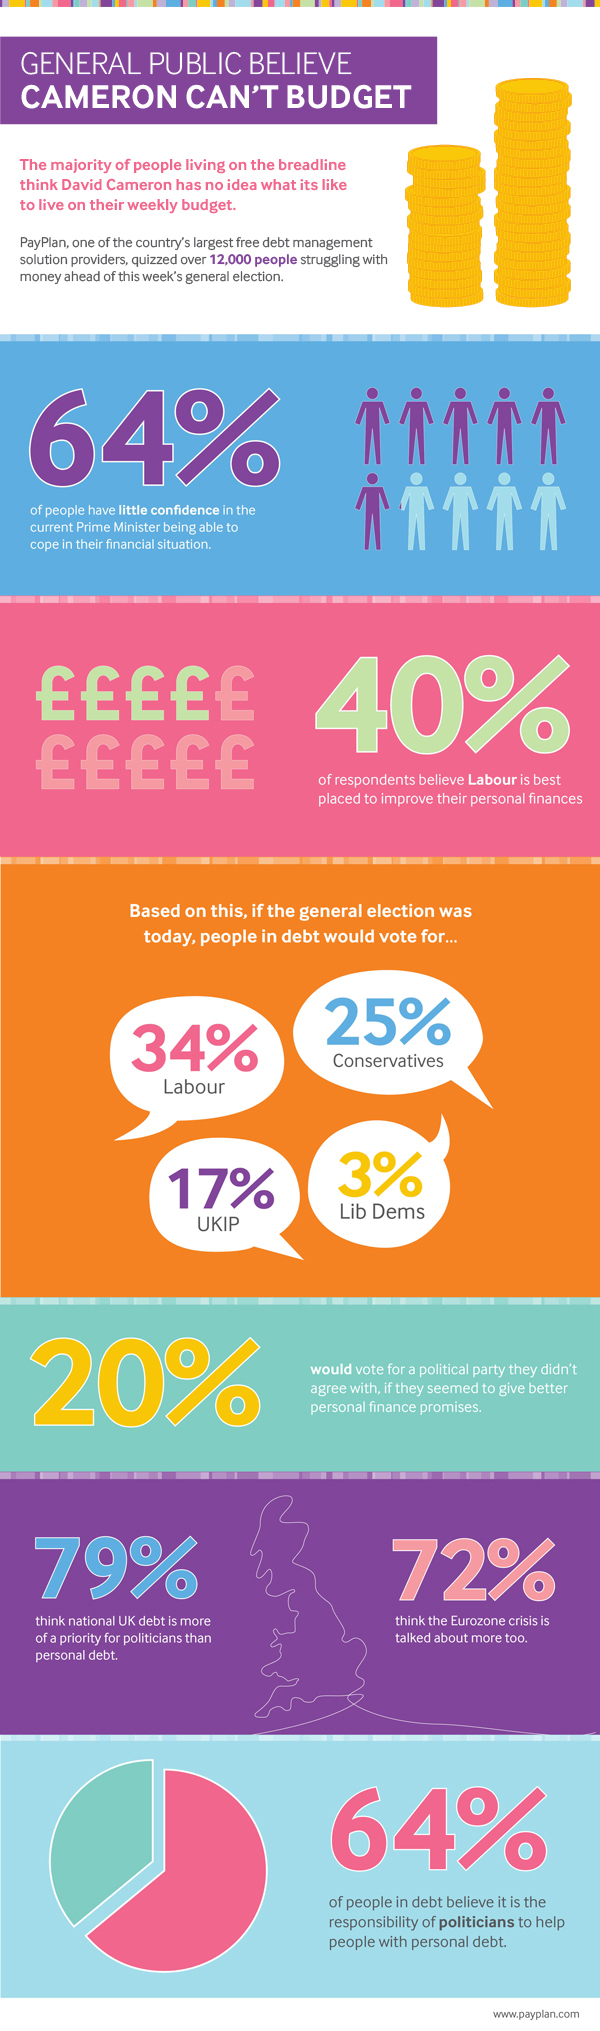 payplan election infographic